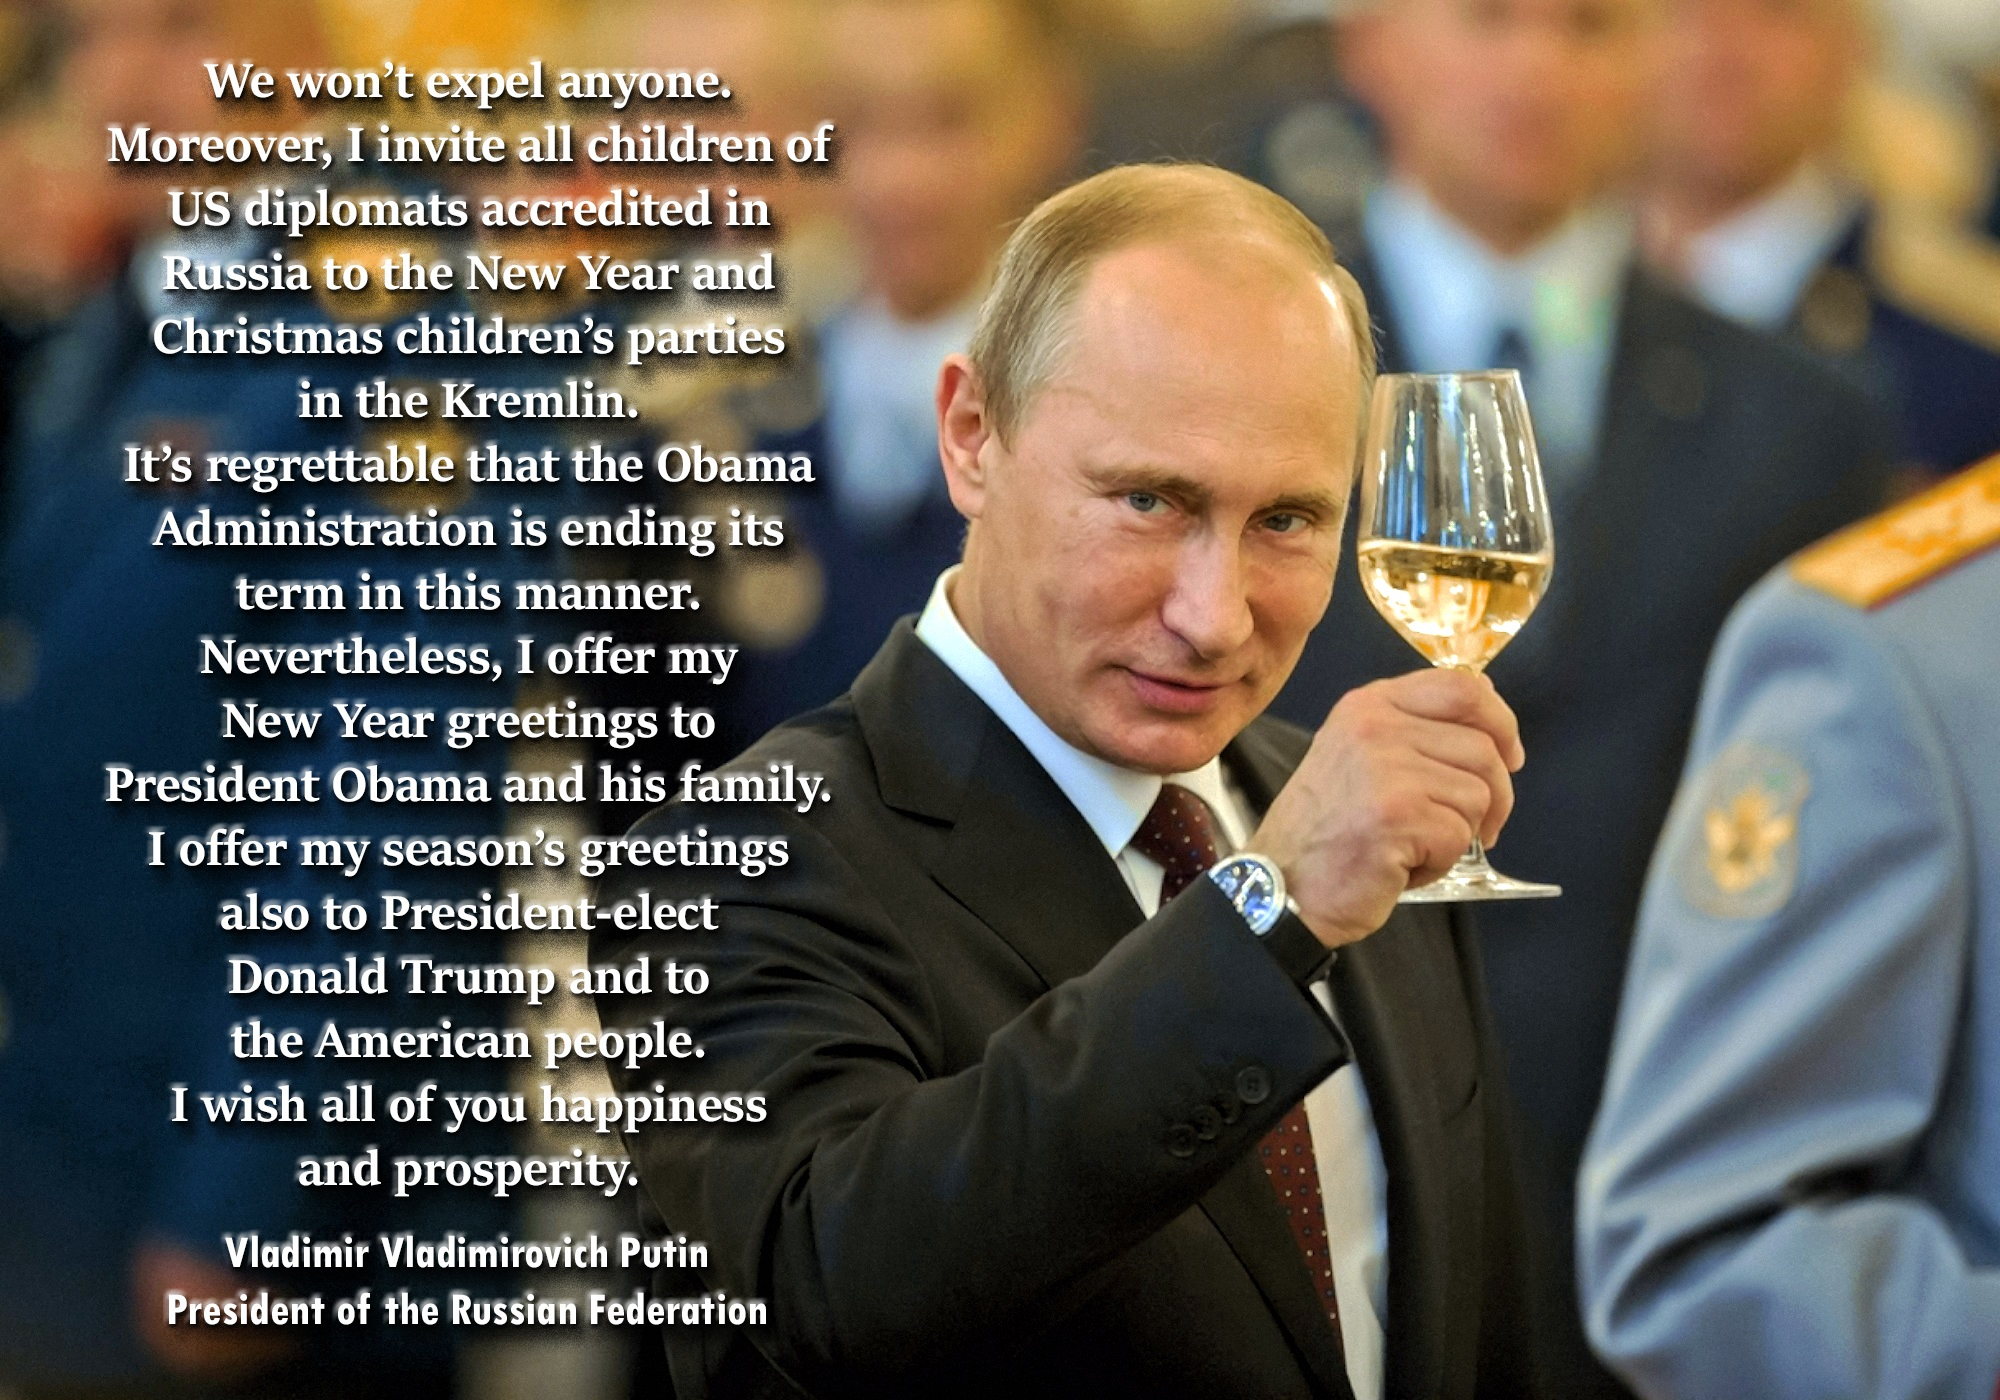 00-putin-new-year-on-obama-010117